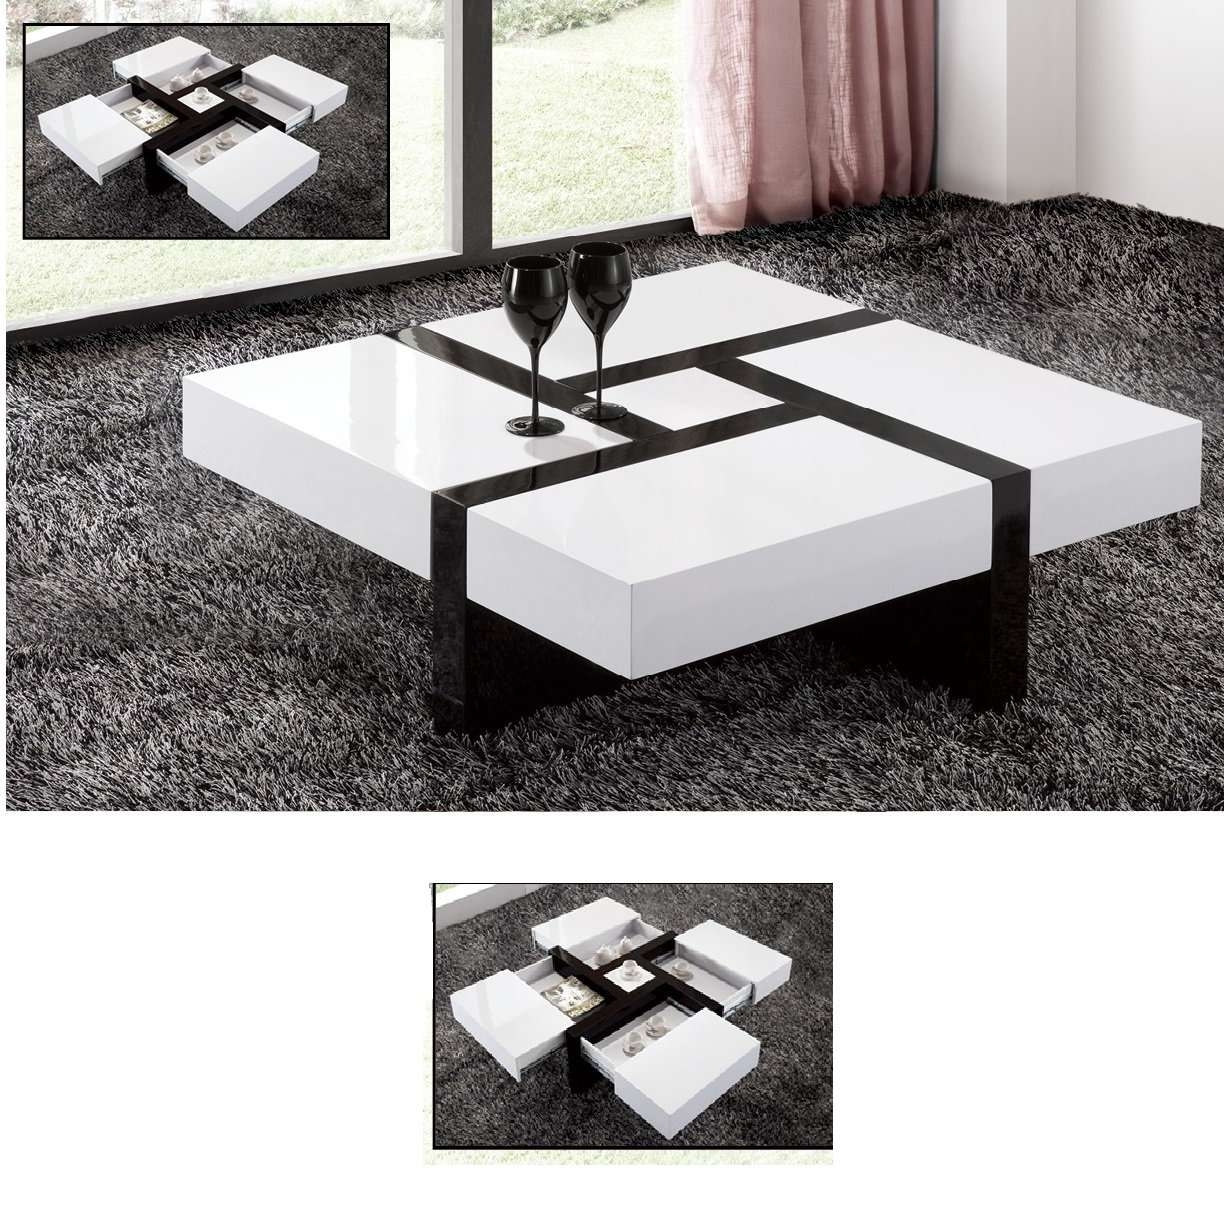 Famous High Gloss Coffee Tables Intended For Extendable High Gloss Coffee Table – Fif Blog (View 13 of 20)